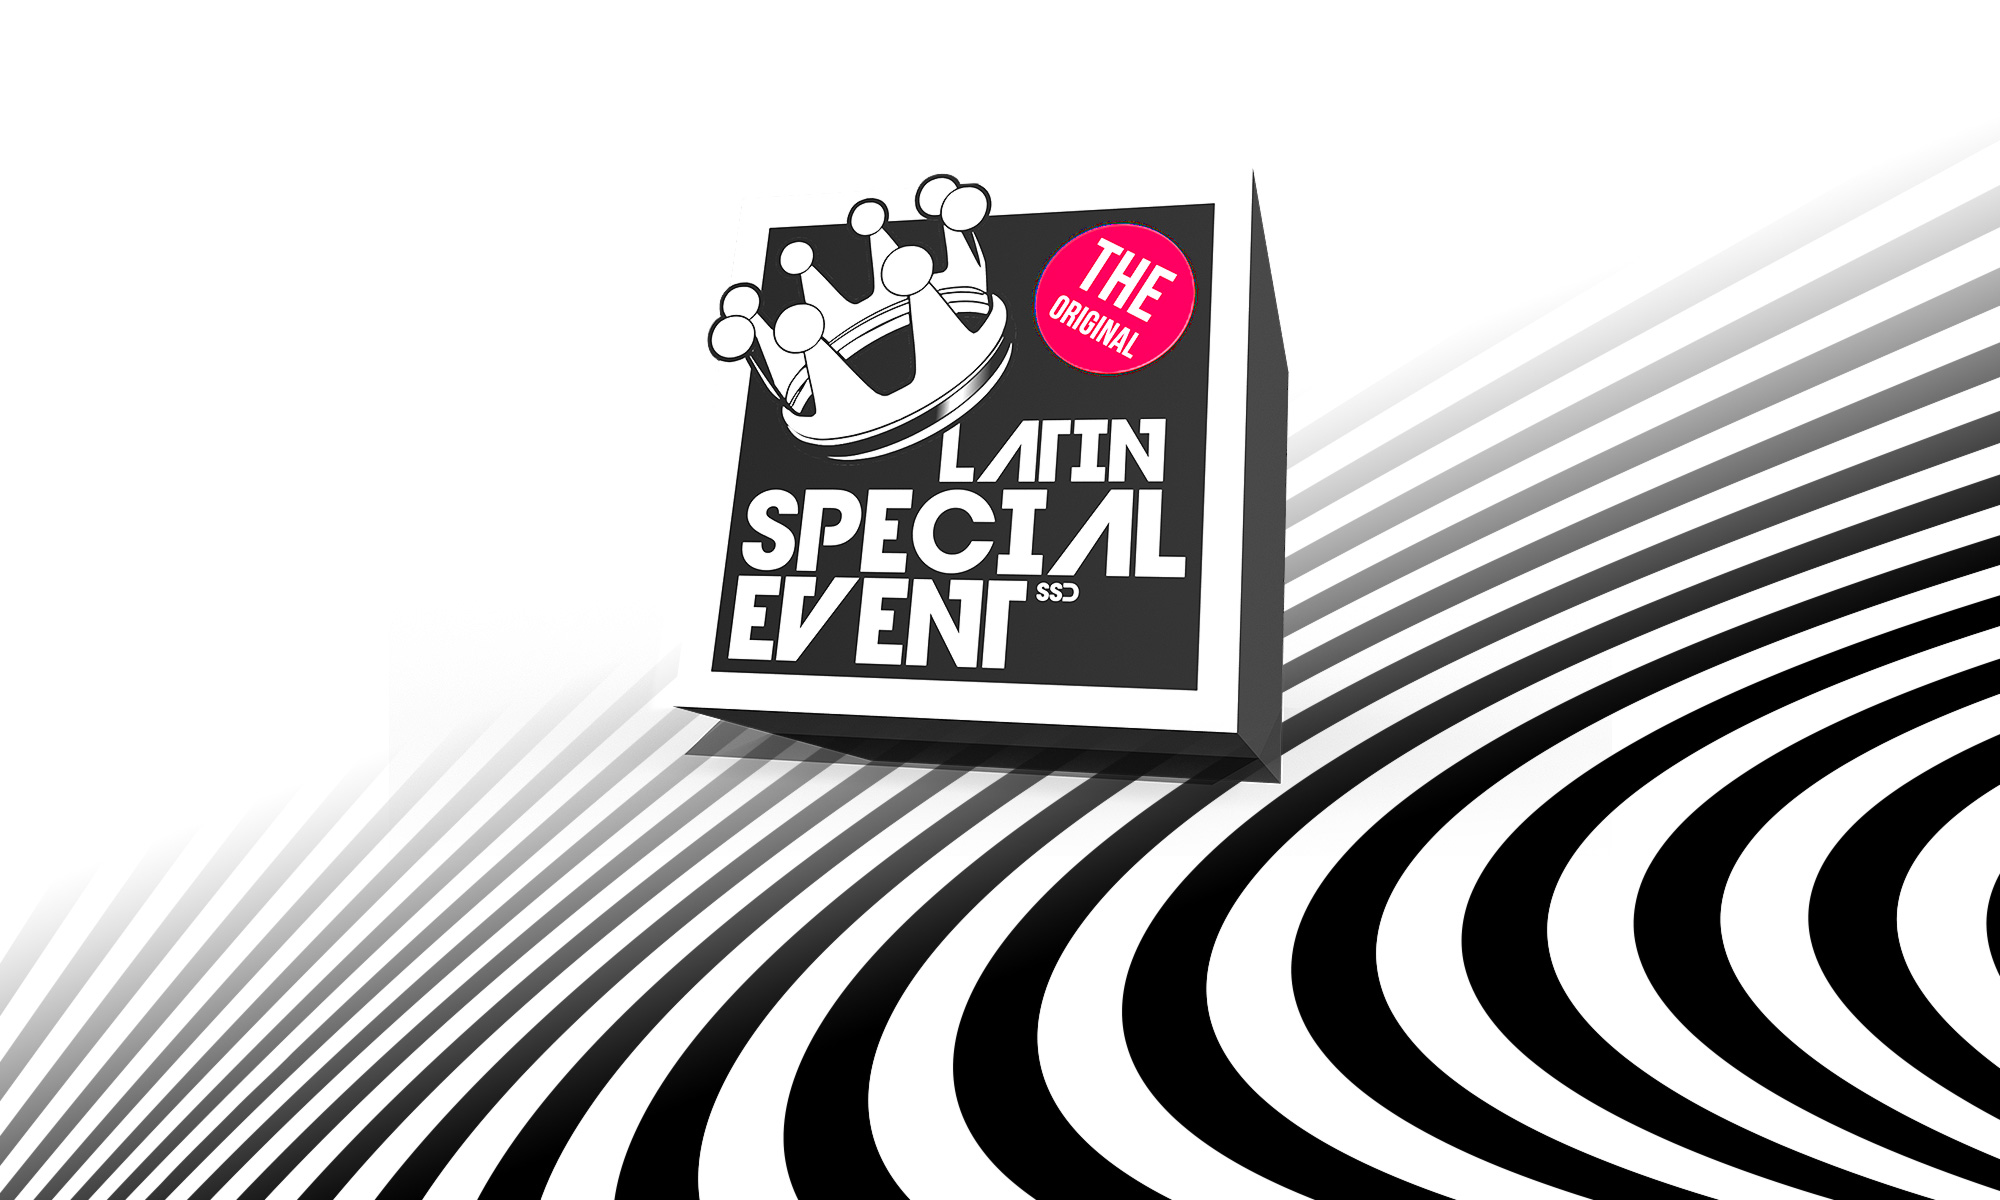 LatinSpecialEvent